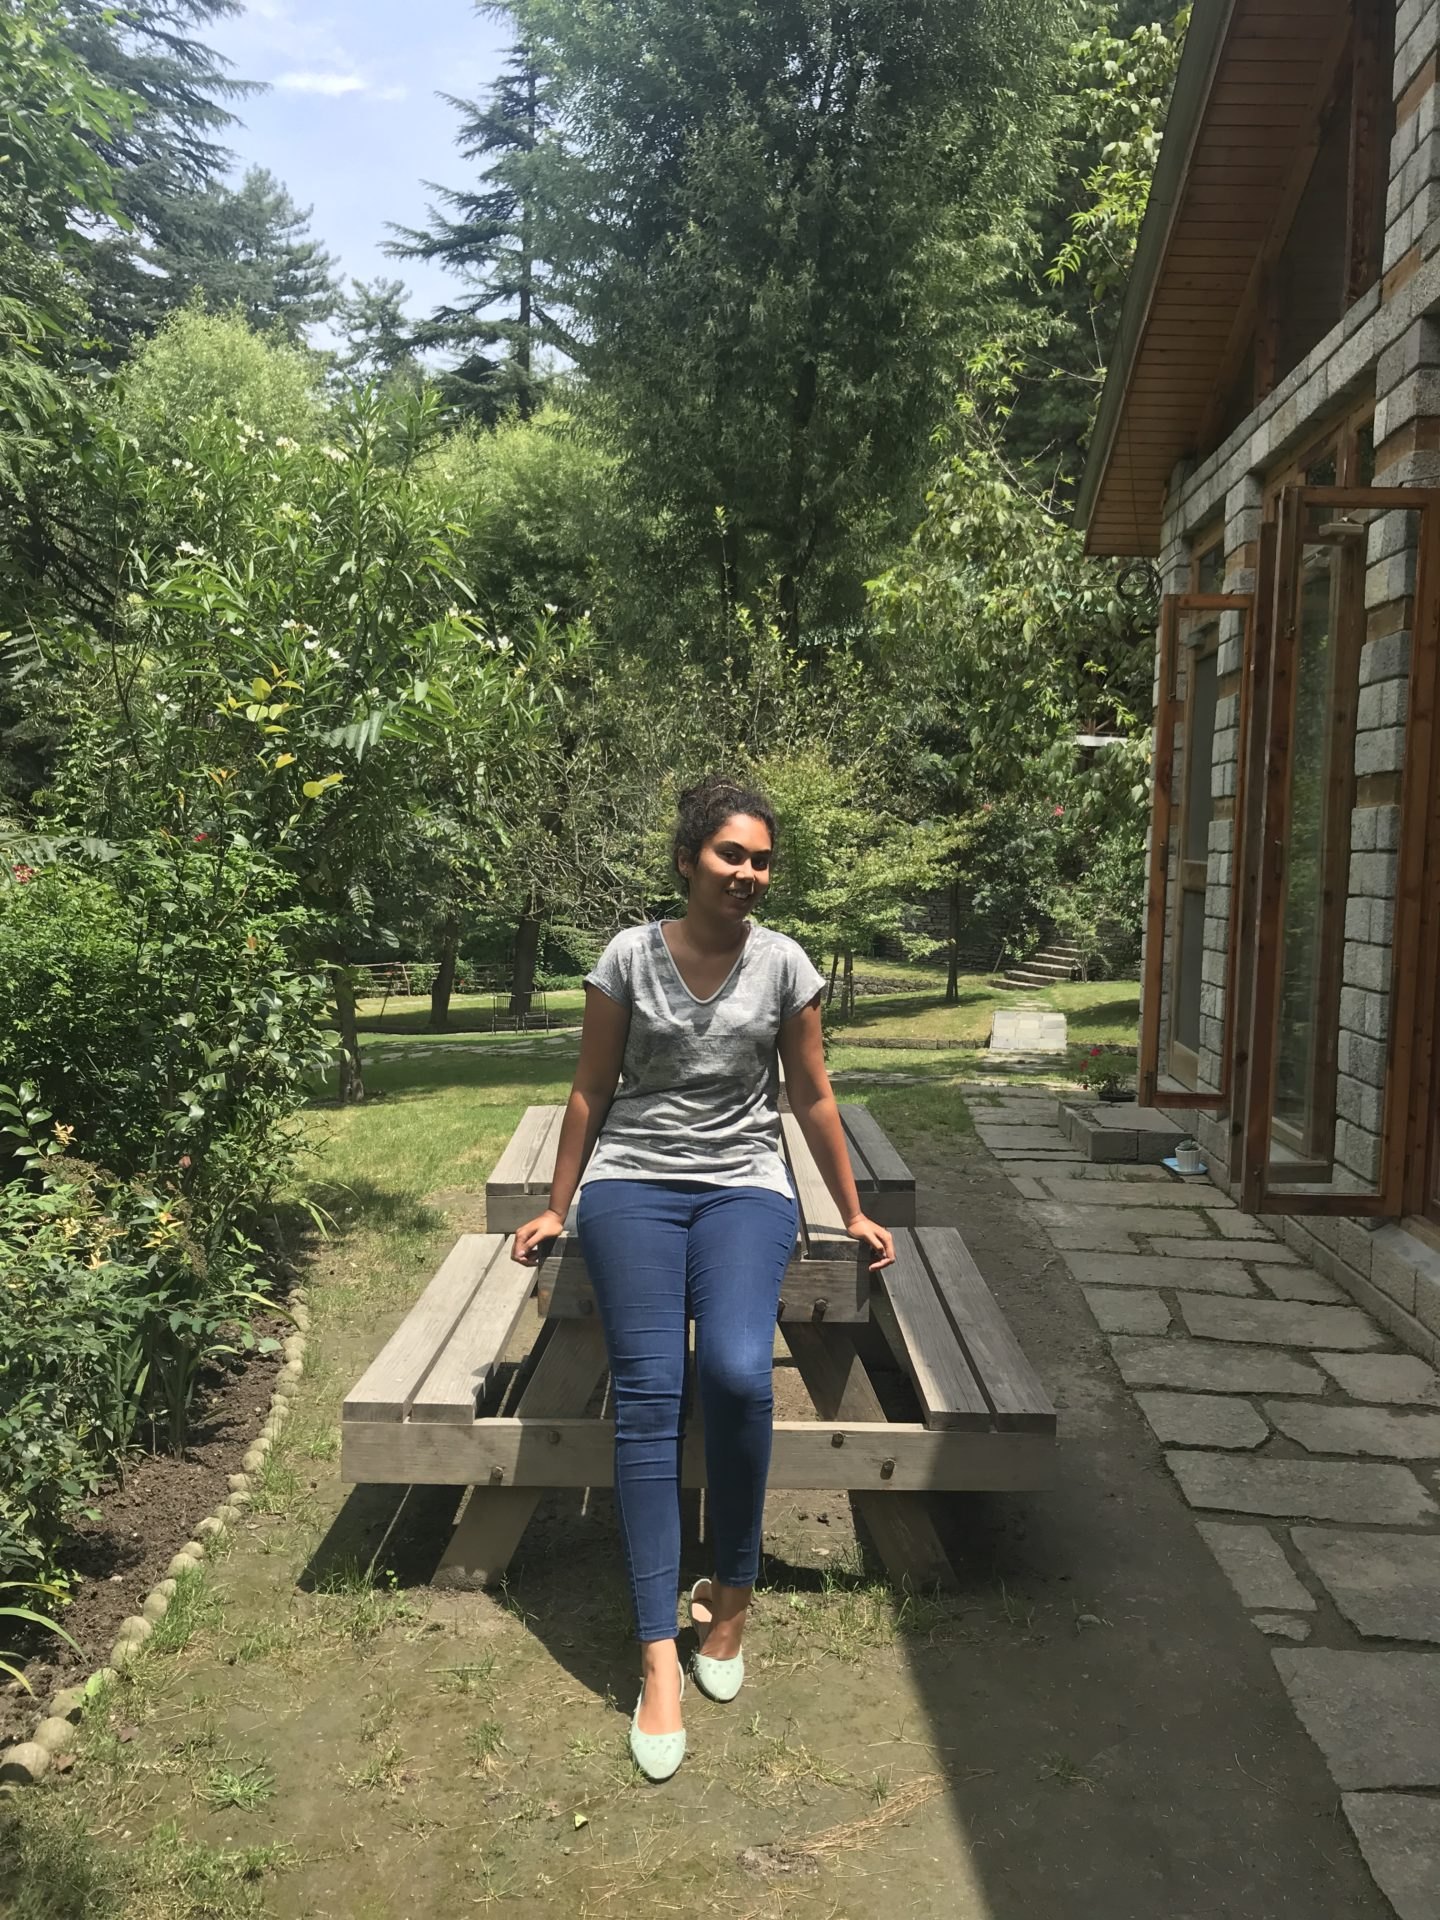 Tall Trees Resort, Manali – an idyllic getaway amid the Deodar trees